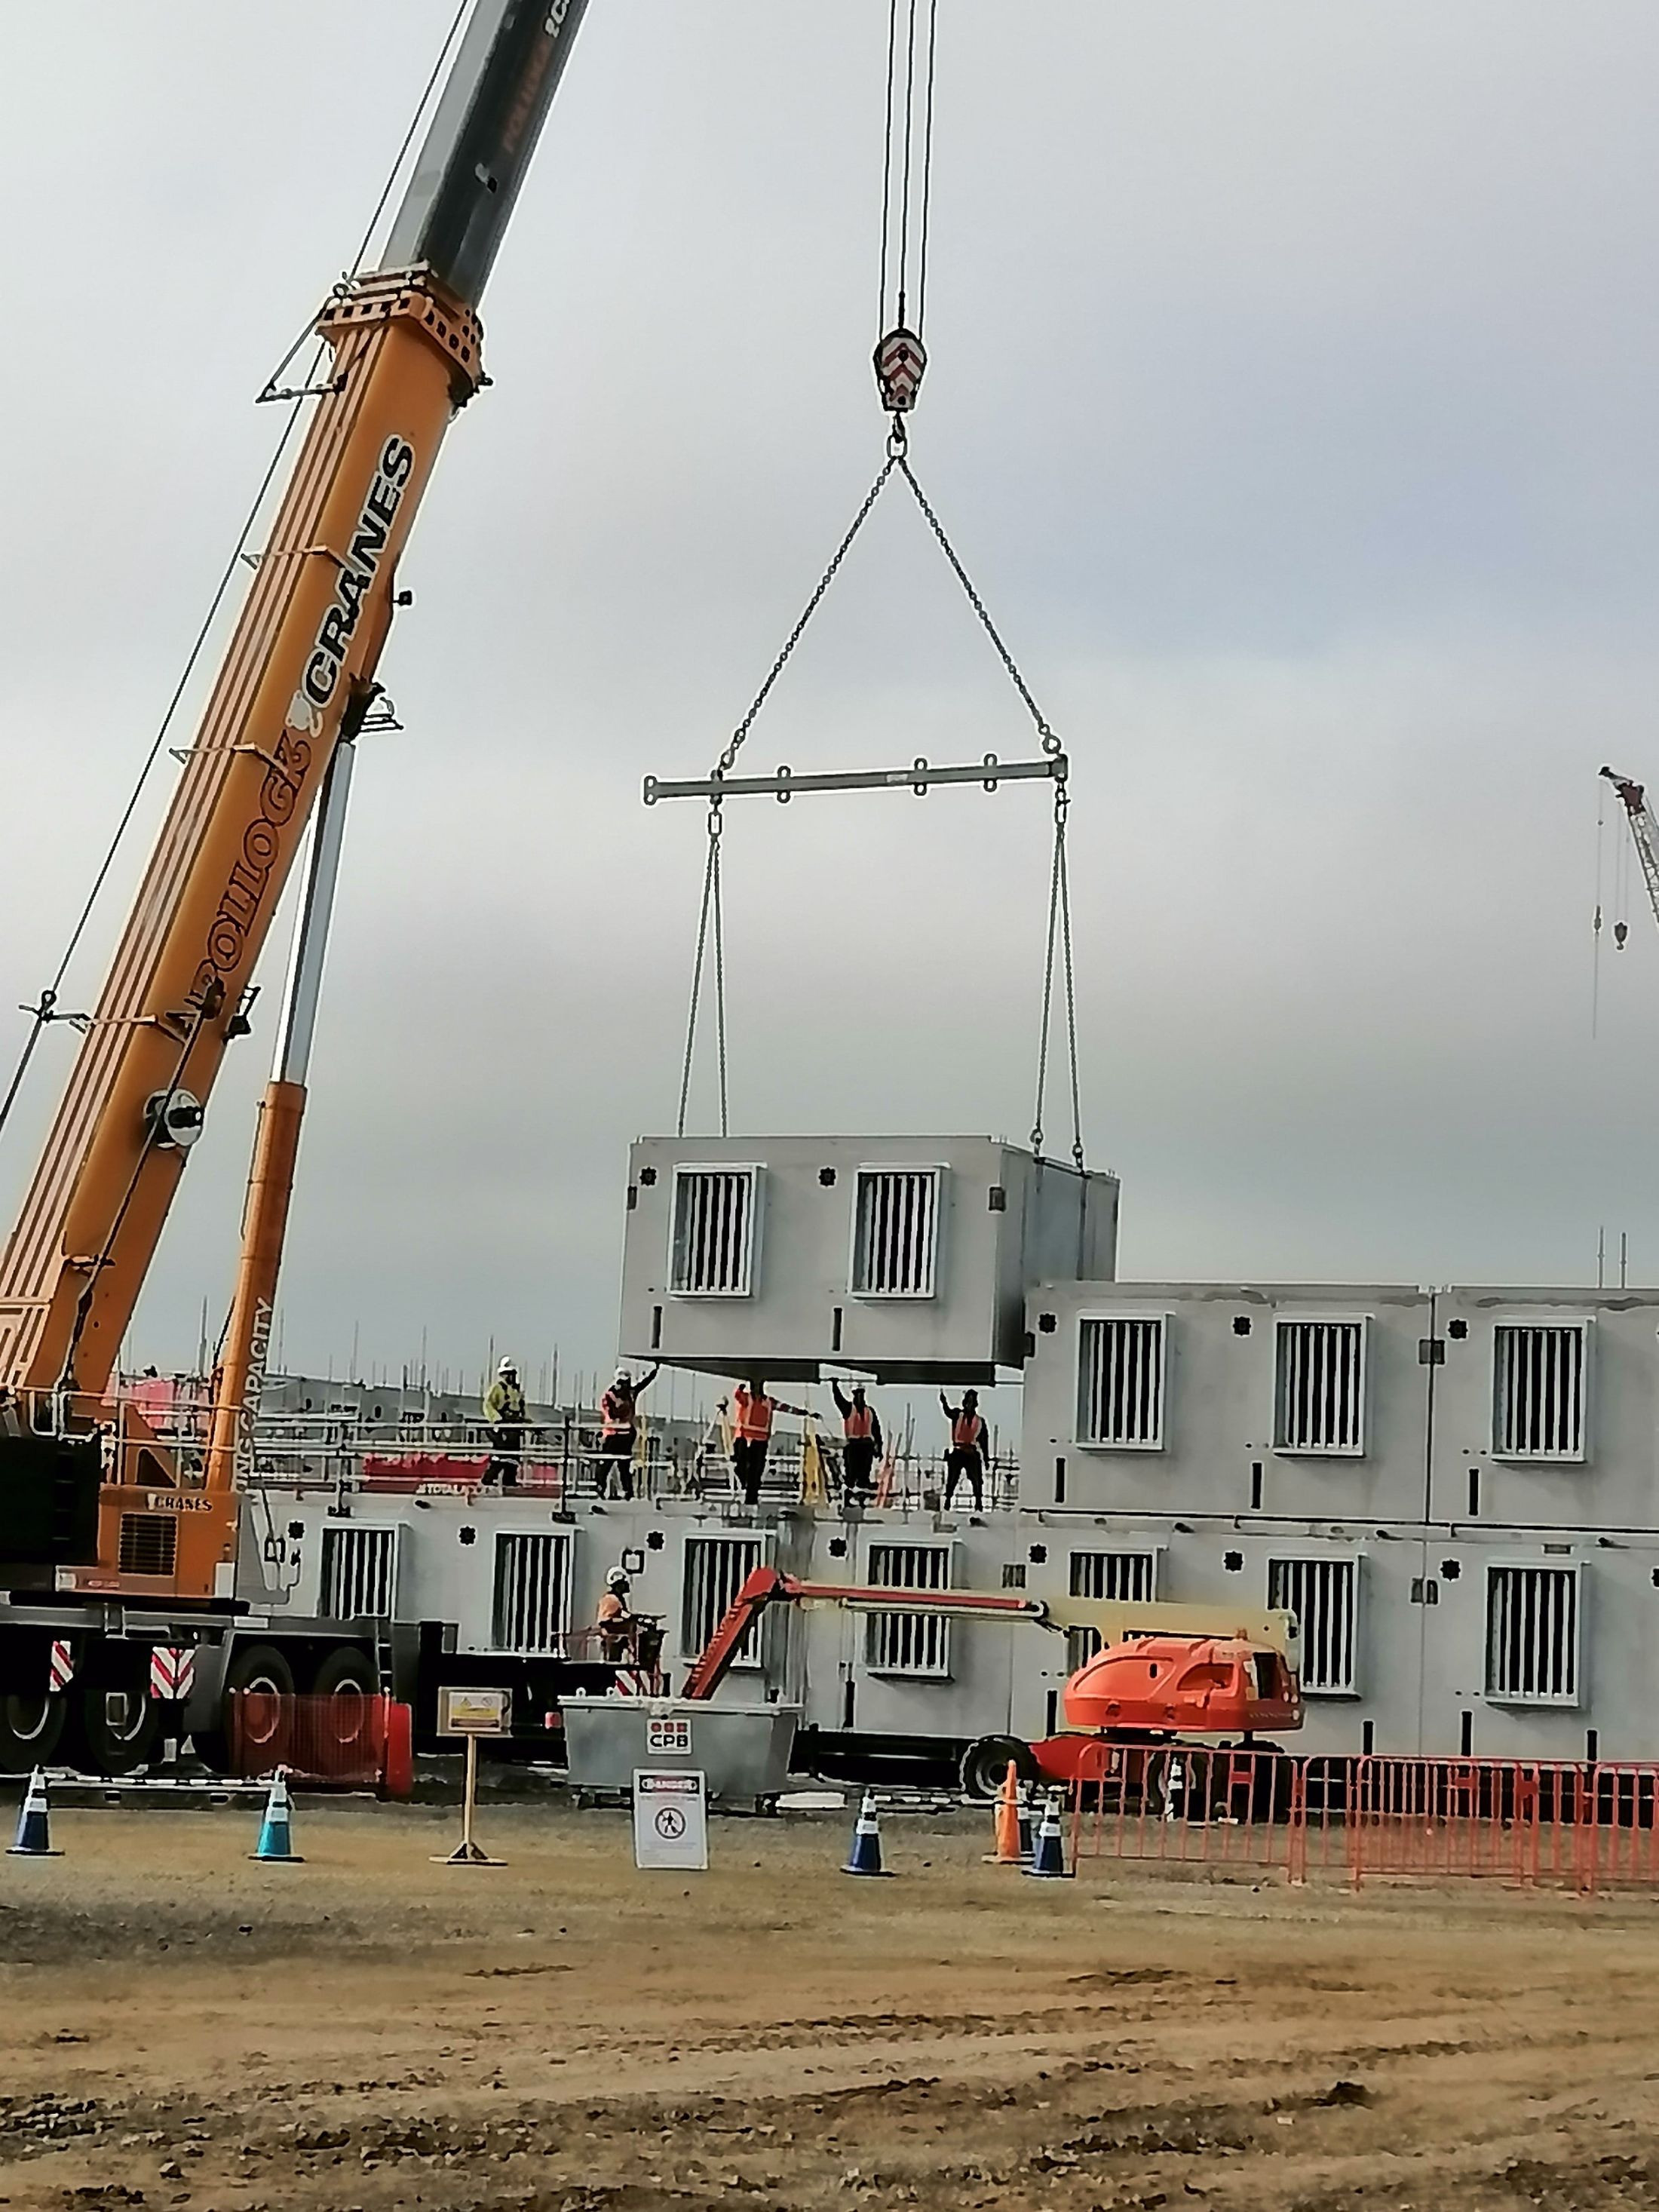 Stacking cell modules provided rapid construction